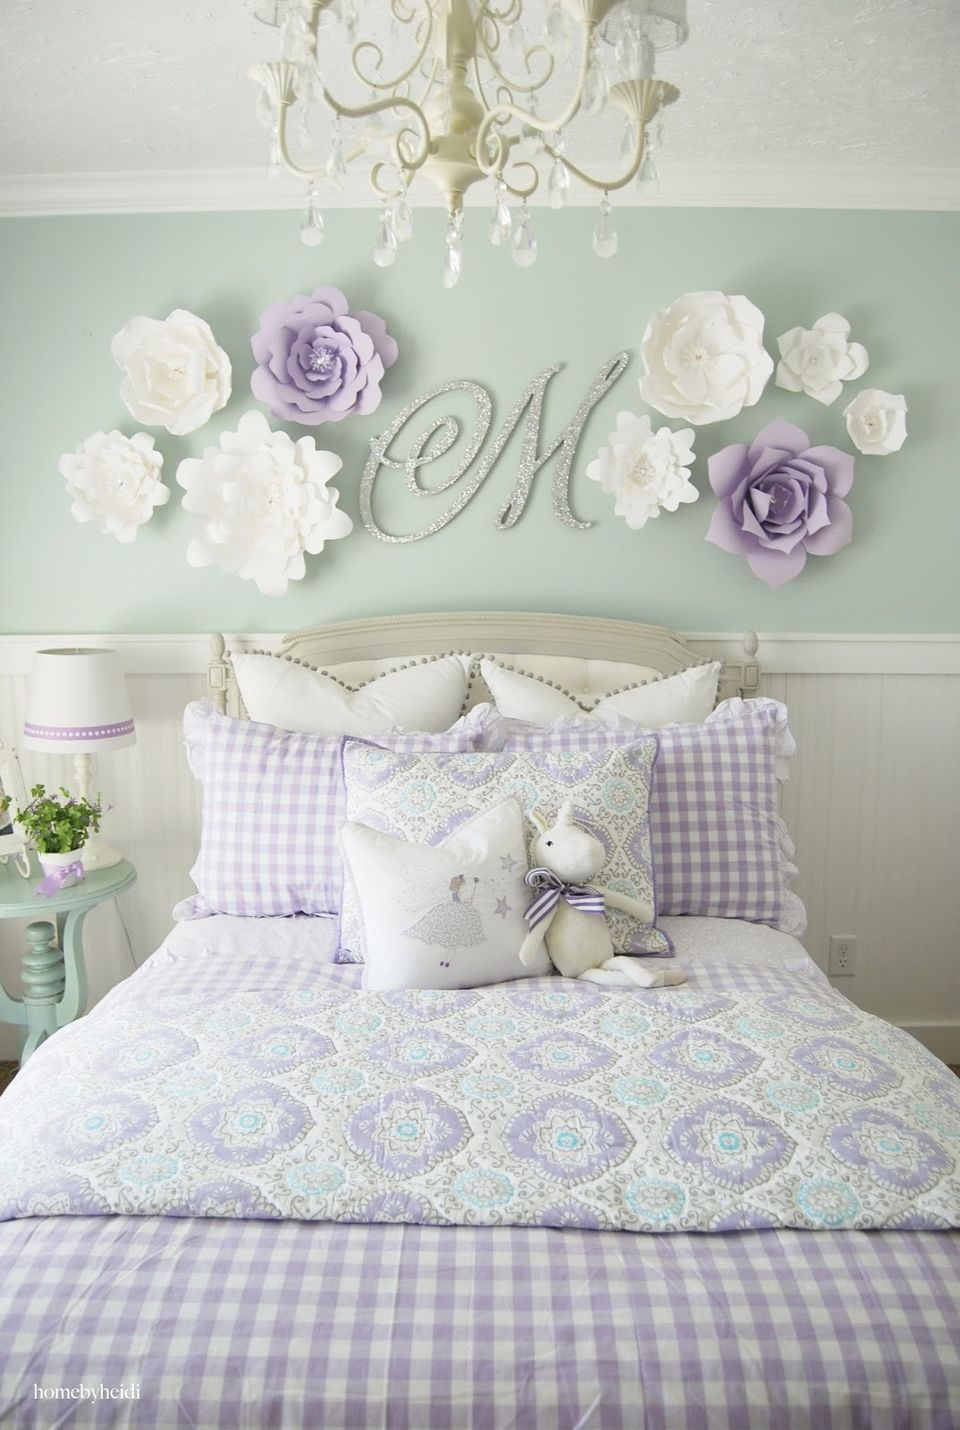 24 Wall Decor Ideas For Girls Rooms Pink Princess Room Toddler